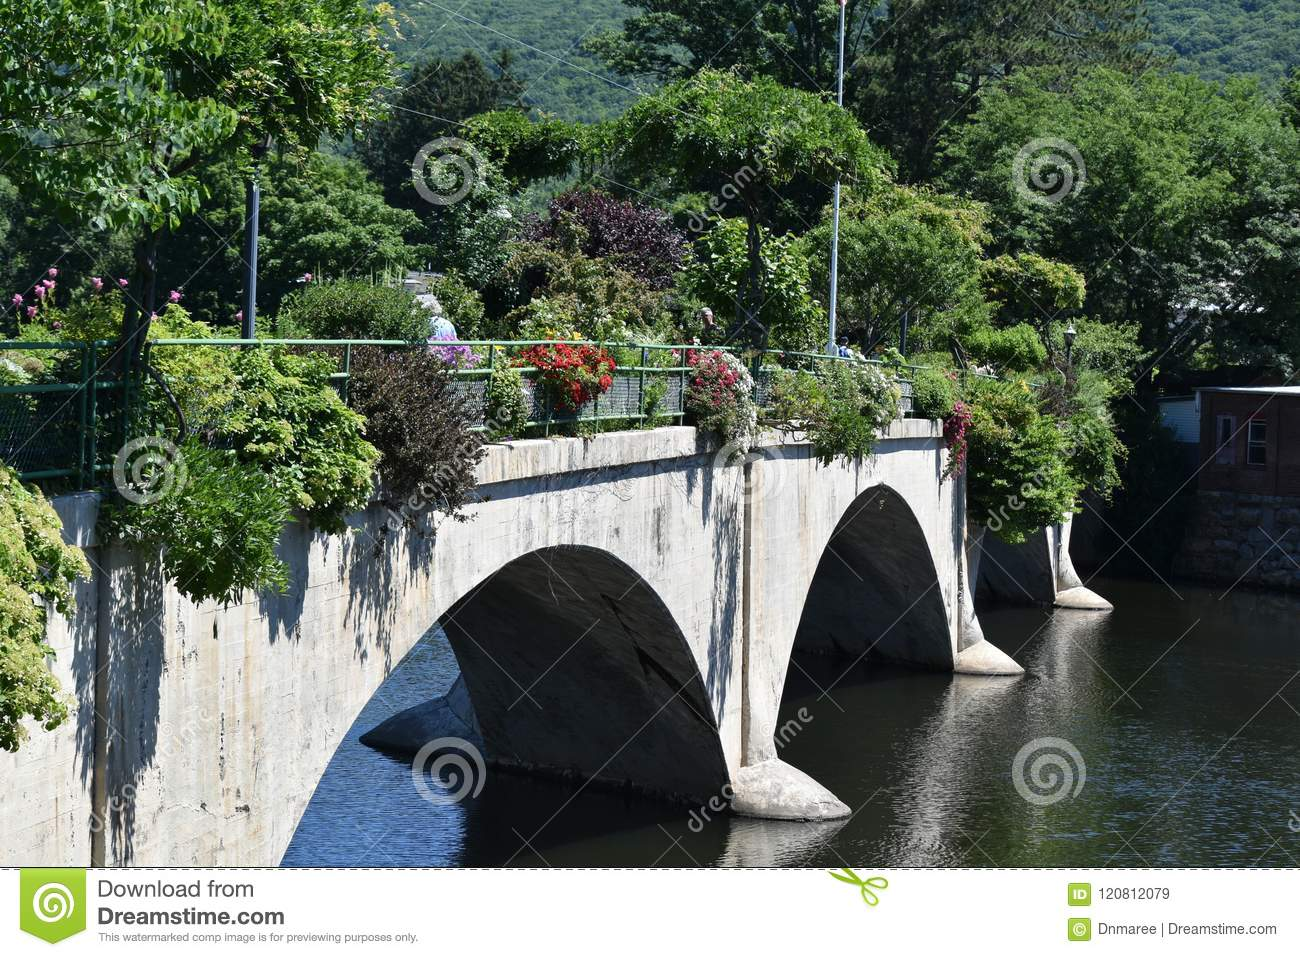 Ponte de Fowers, quedas de Shelburne, Franklin County, Massacusetts, Estados Unidos, EUA